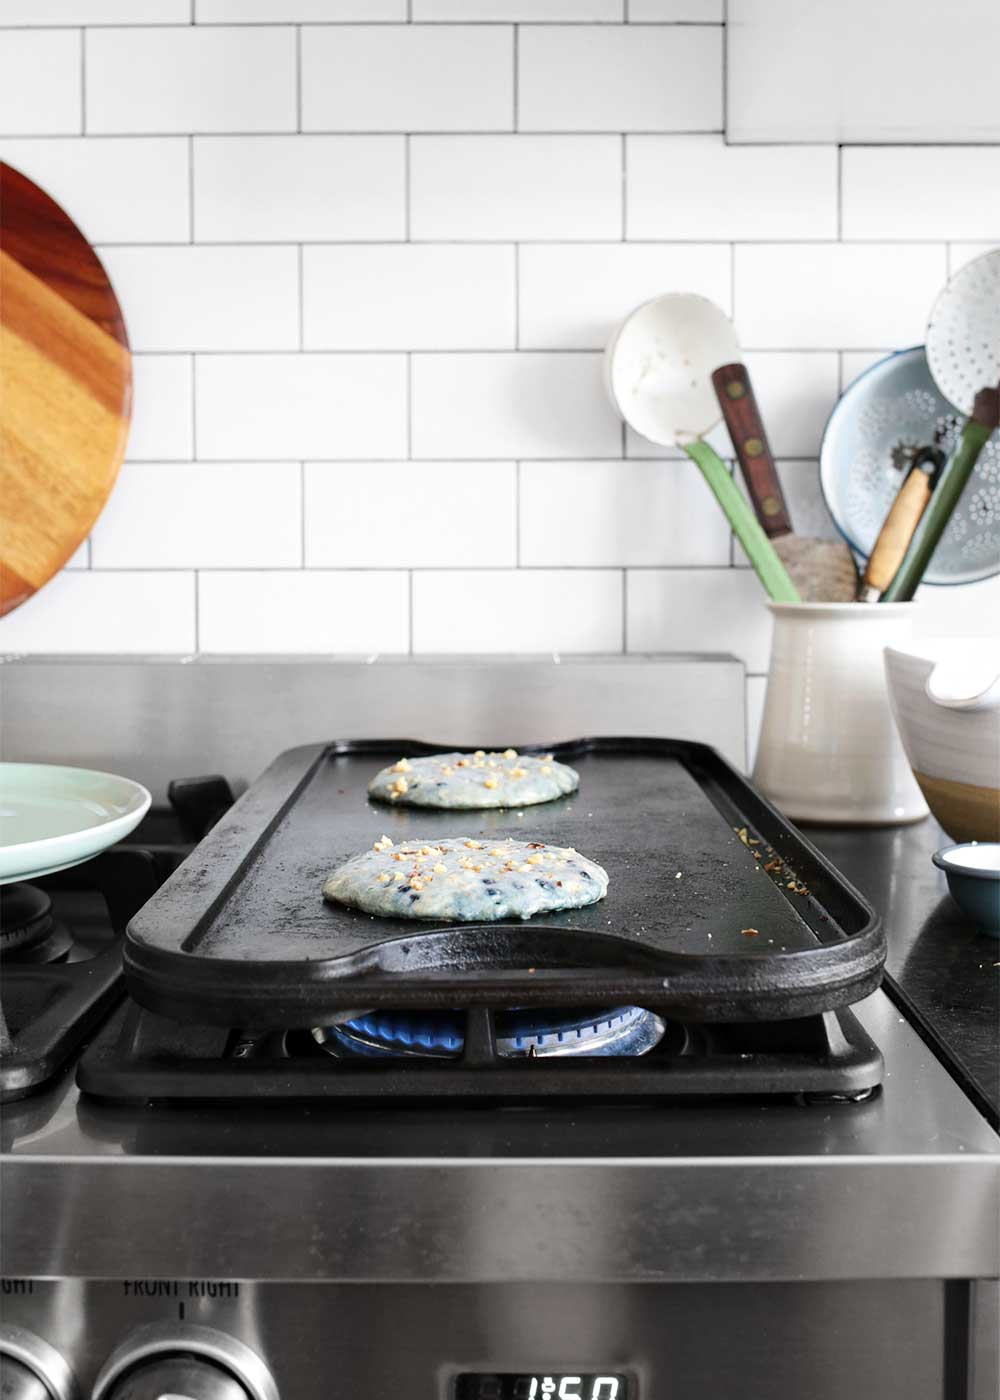 Cooking pancakes on a cast iron skillet